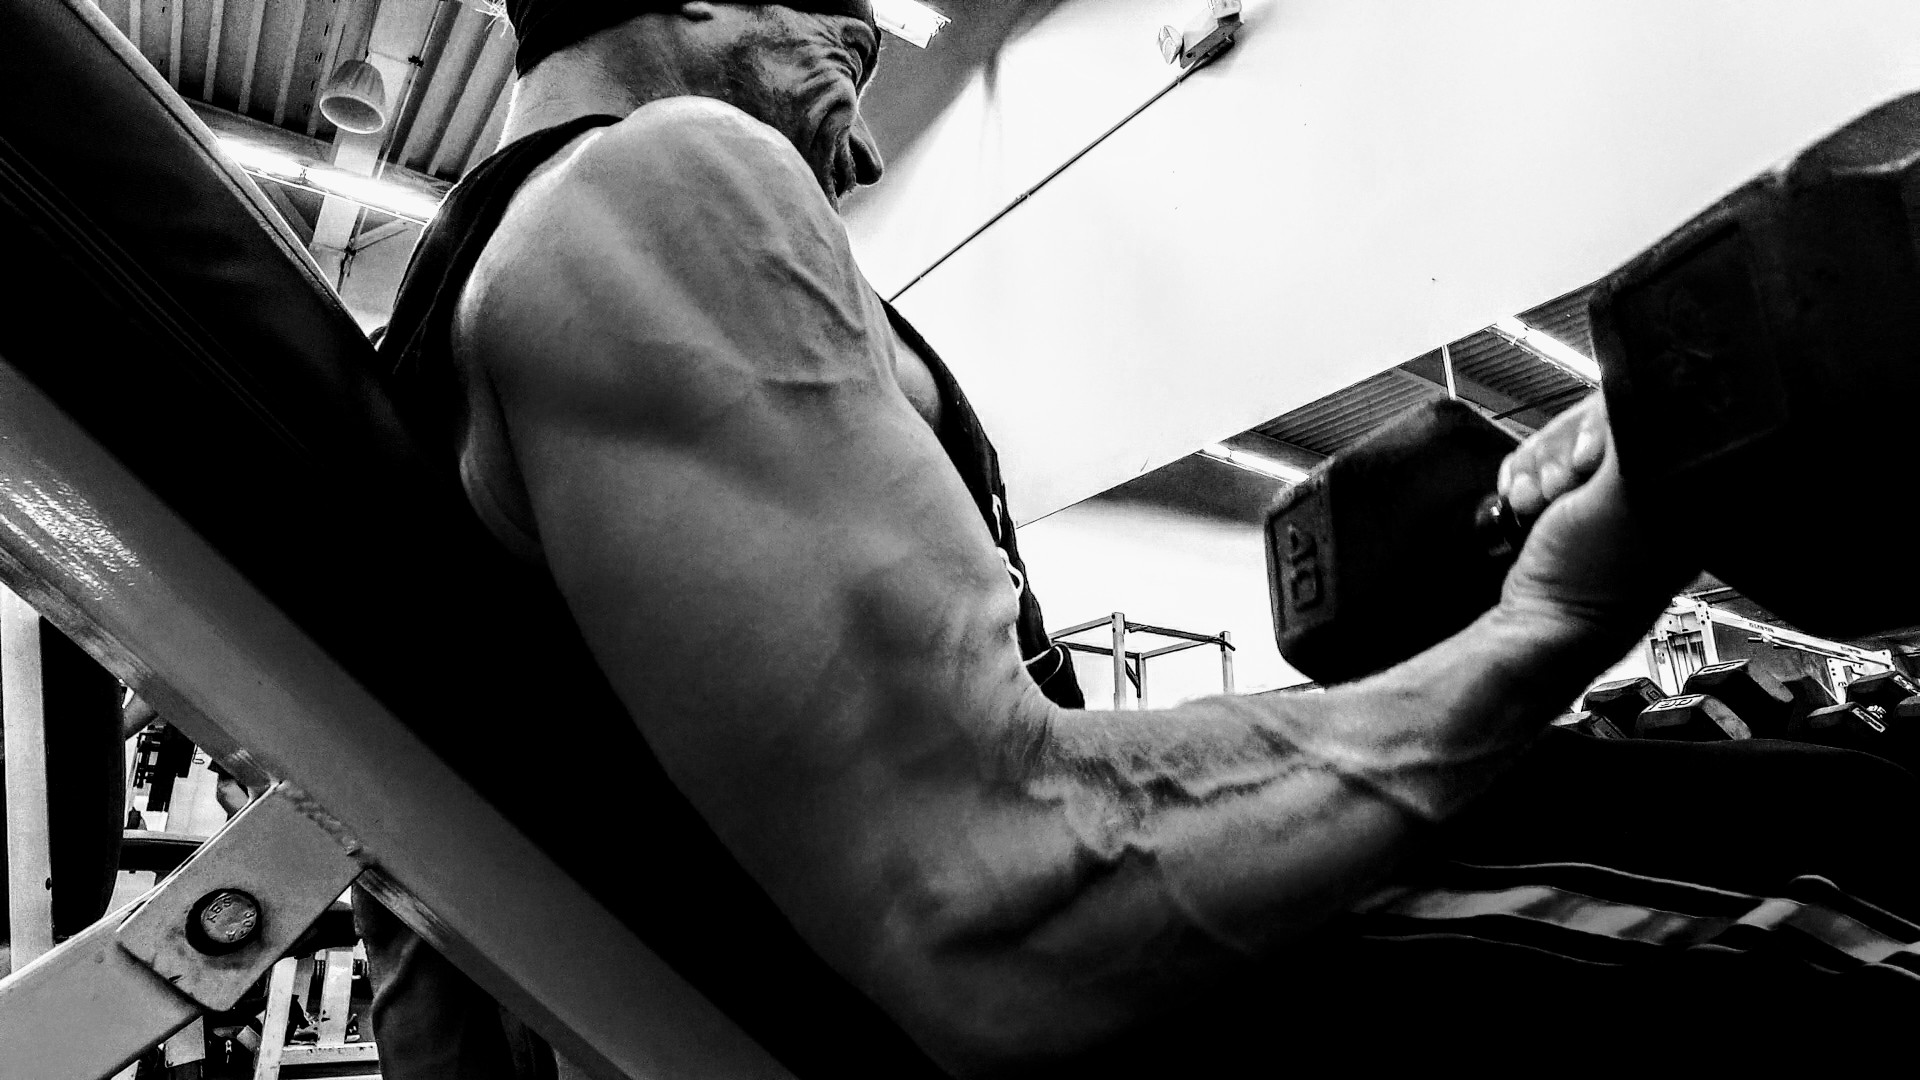 Ryan Schwantes Bicep Exercise